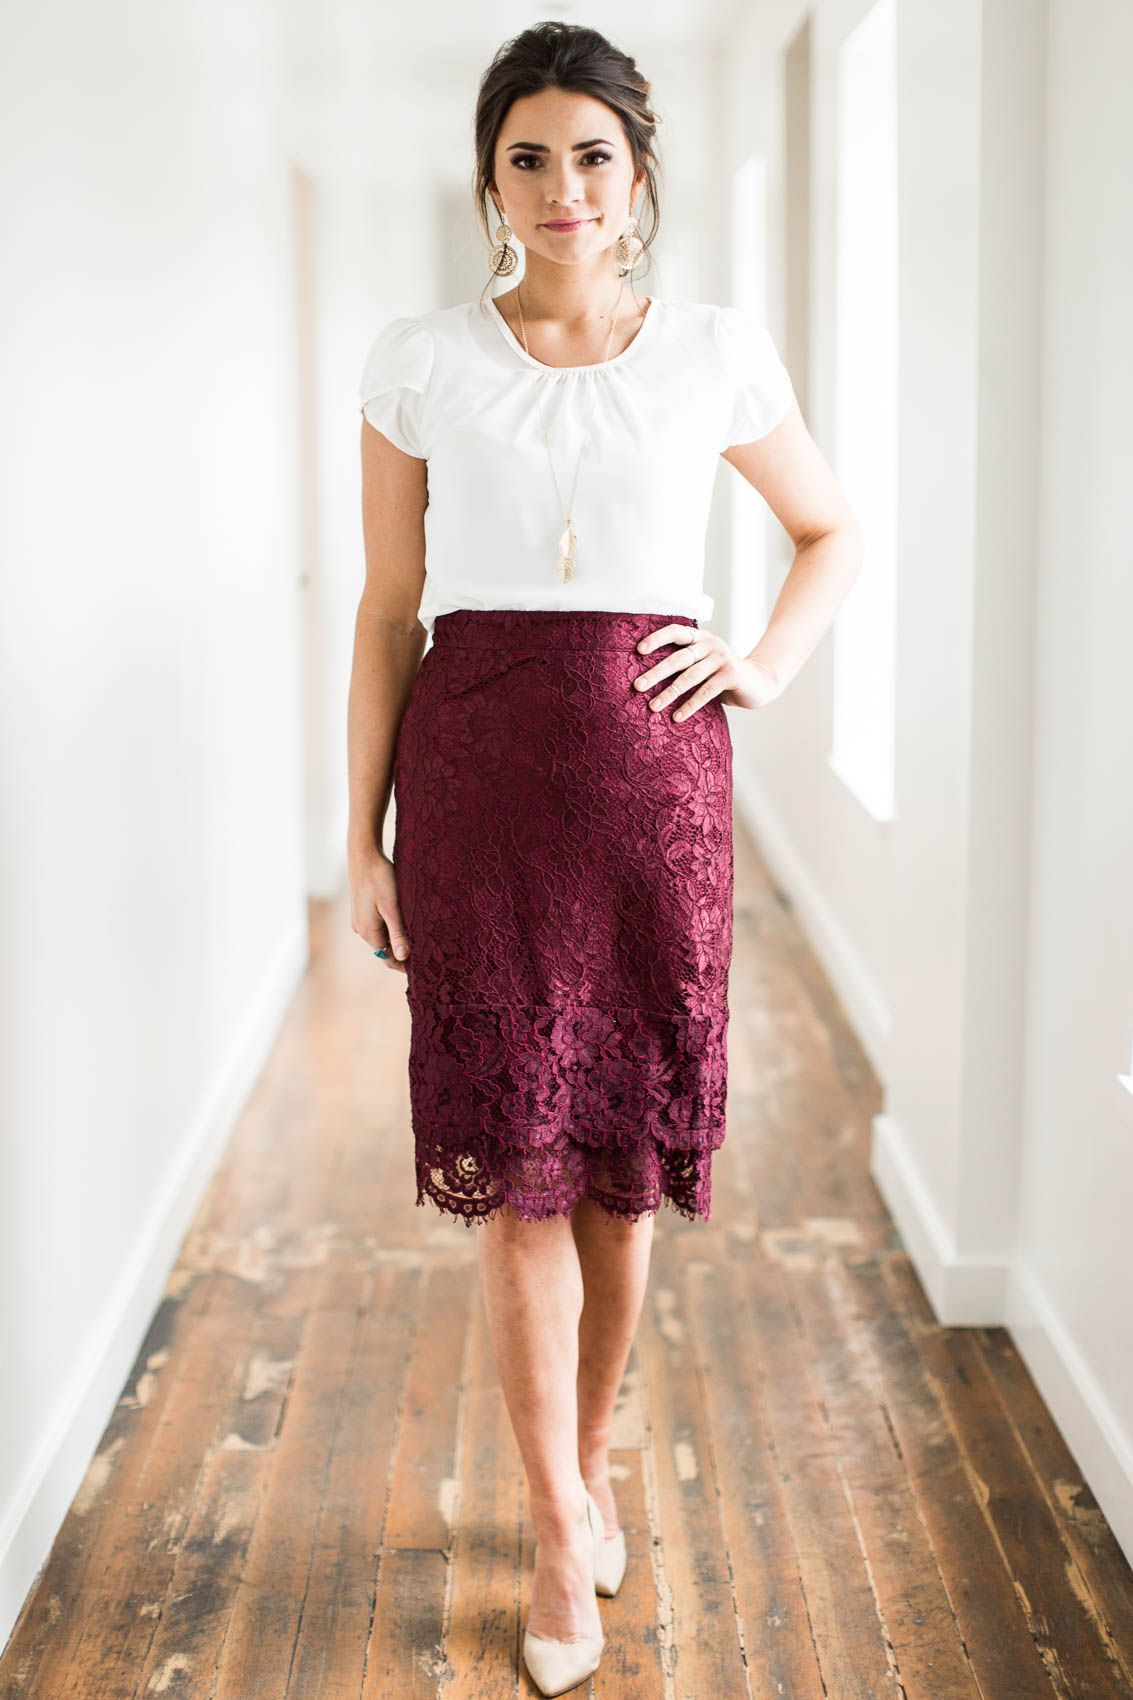 Elegant Classy These Lace Skirts Are Gorgeous Great Choice